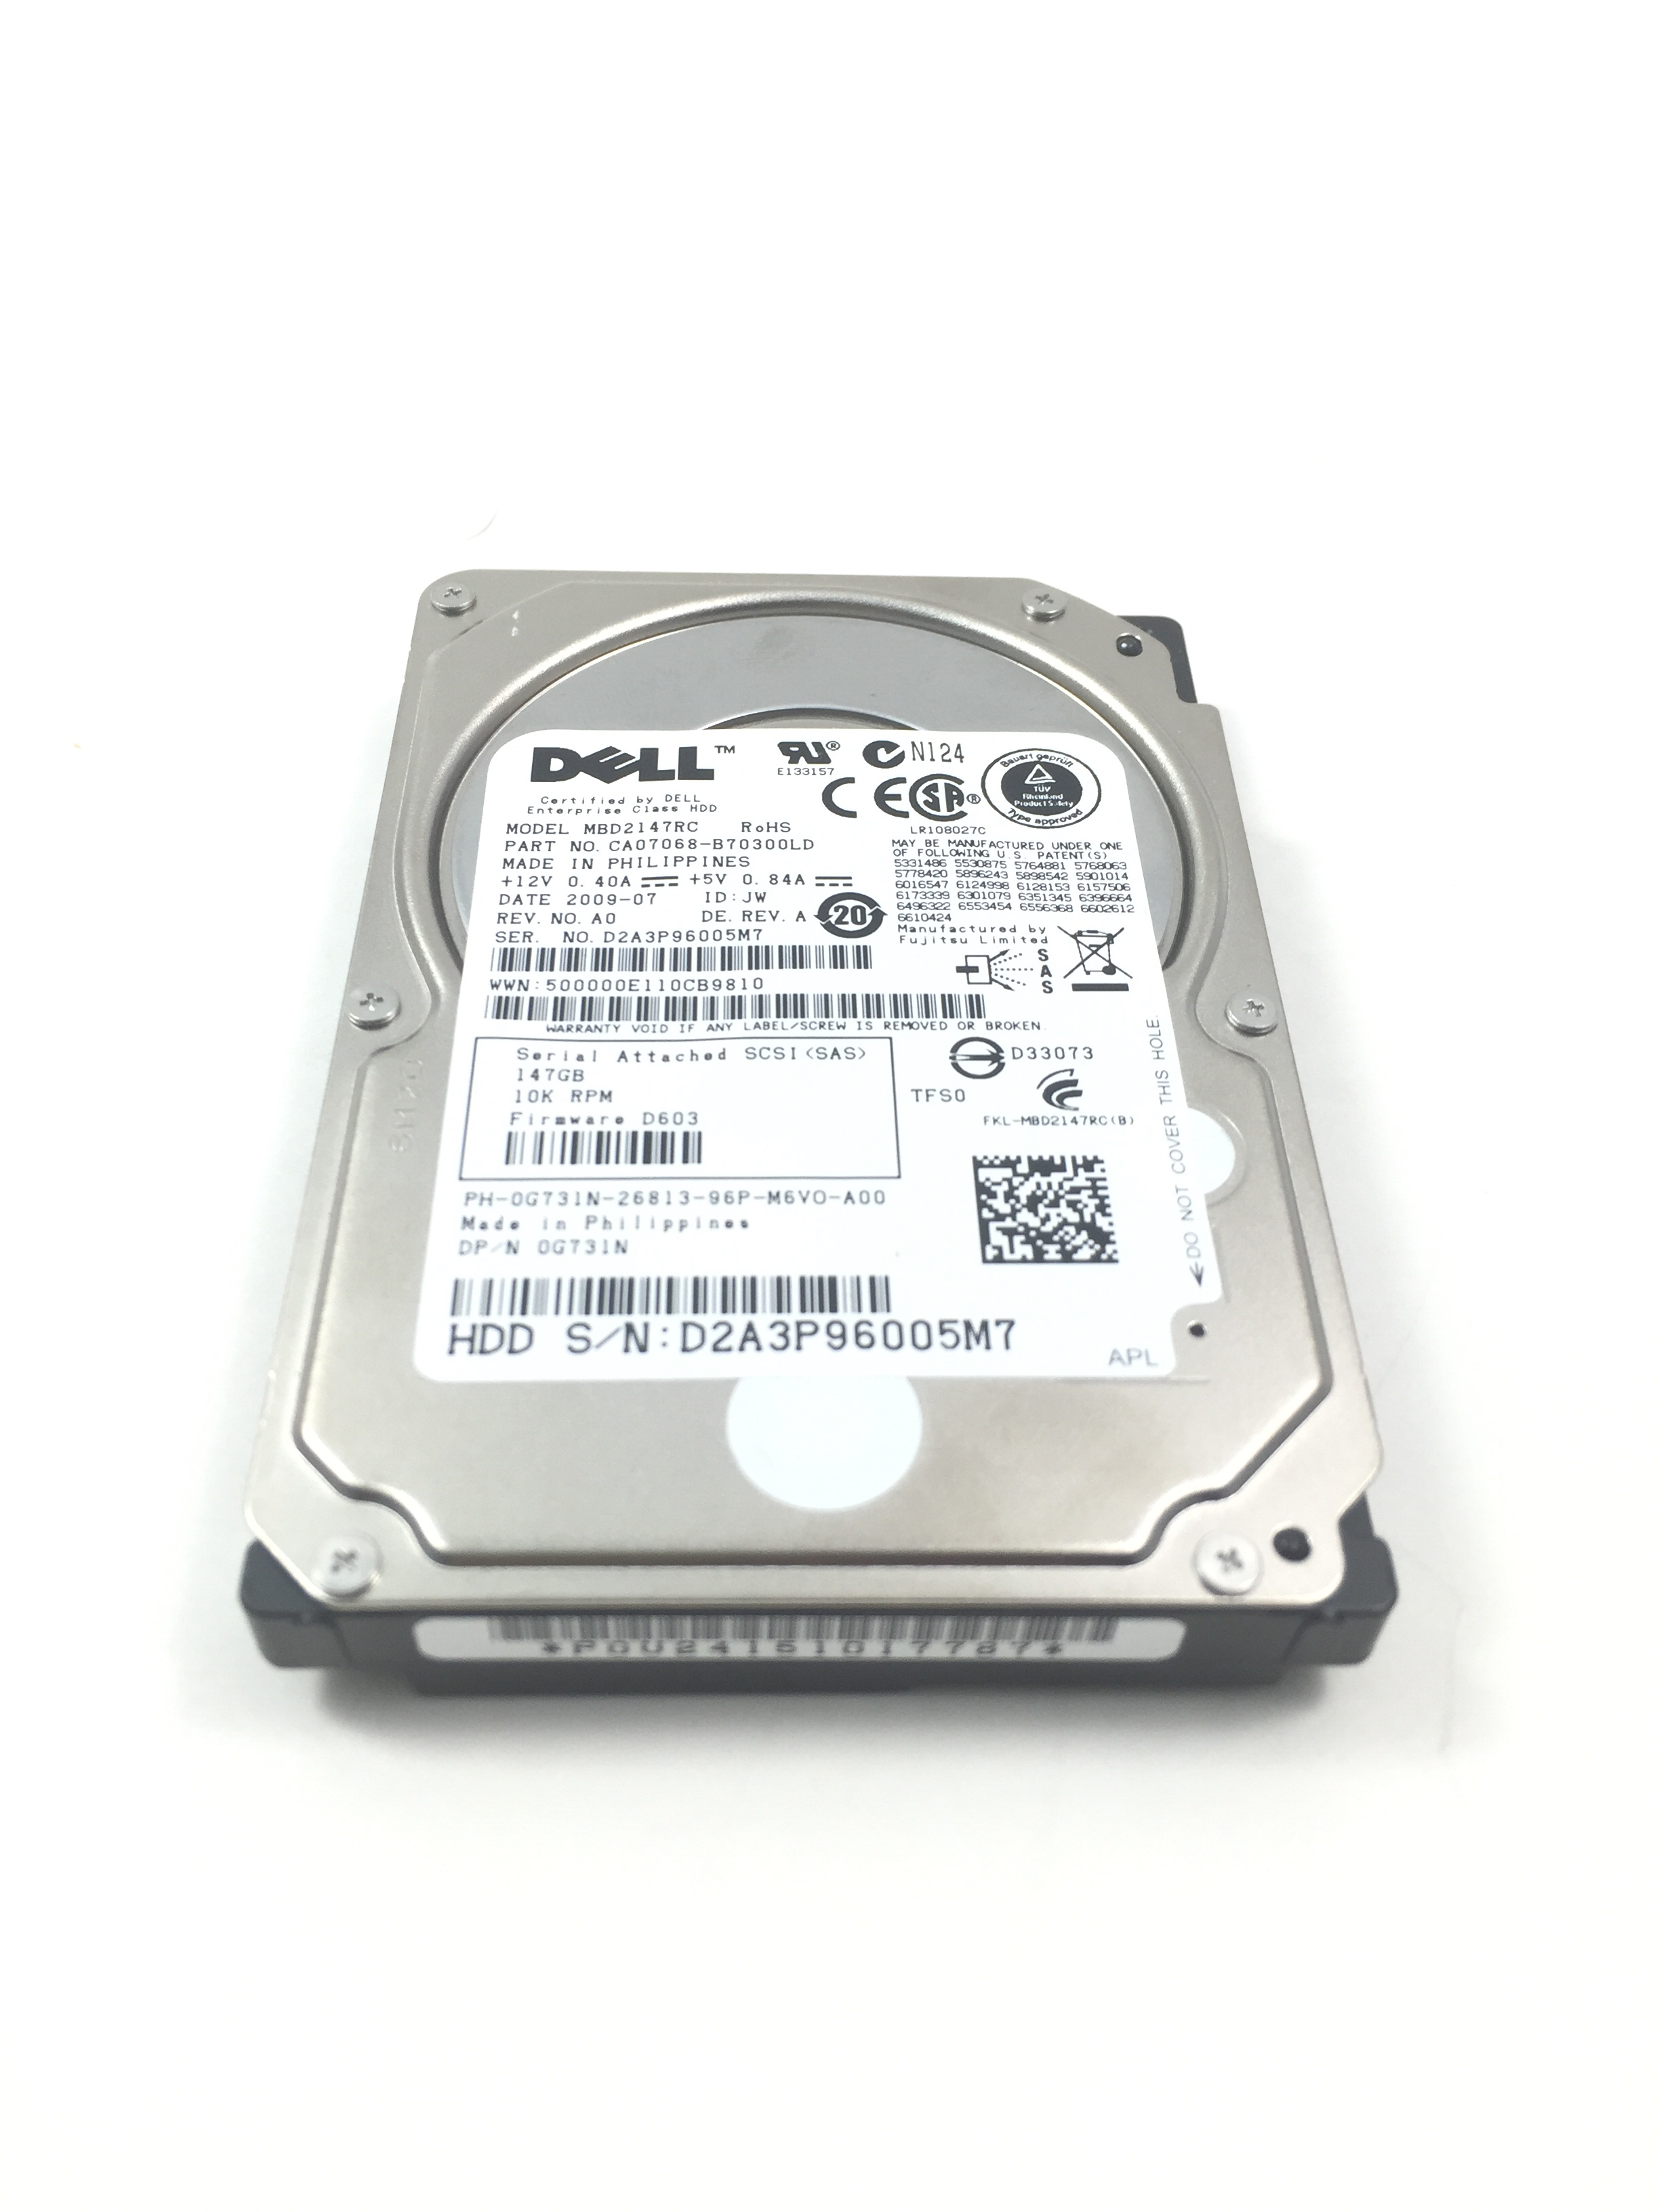 Dell 146GB 10K RPM 6Gbps SAS 2.5'' Hard Drive (G731N)